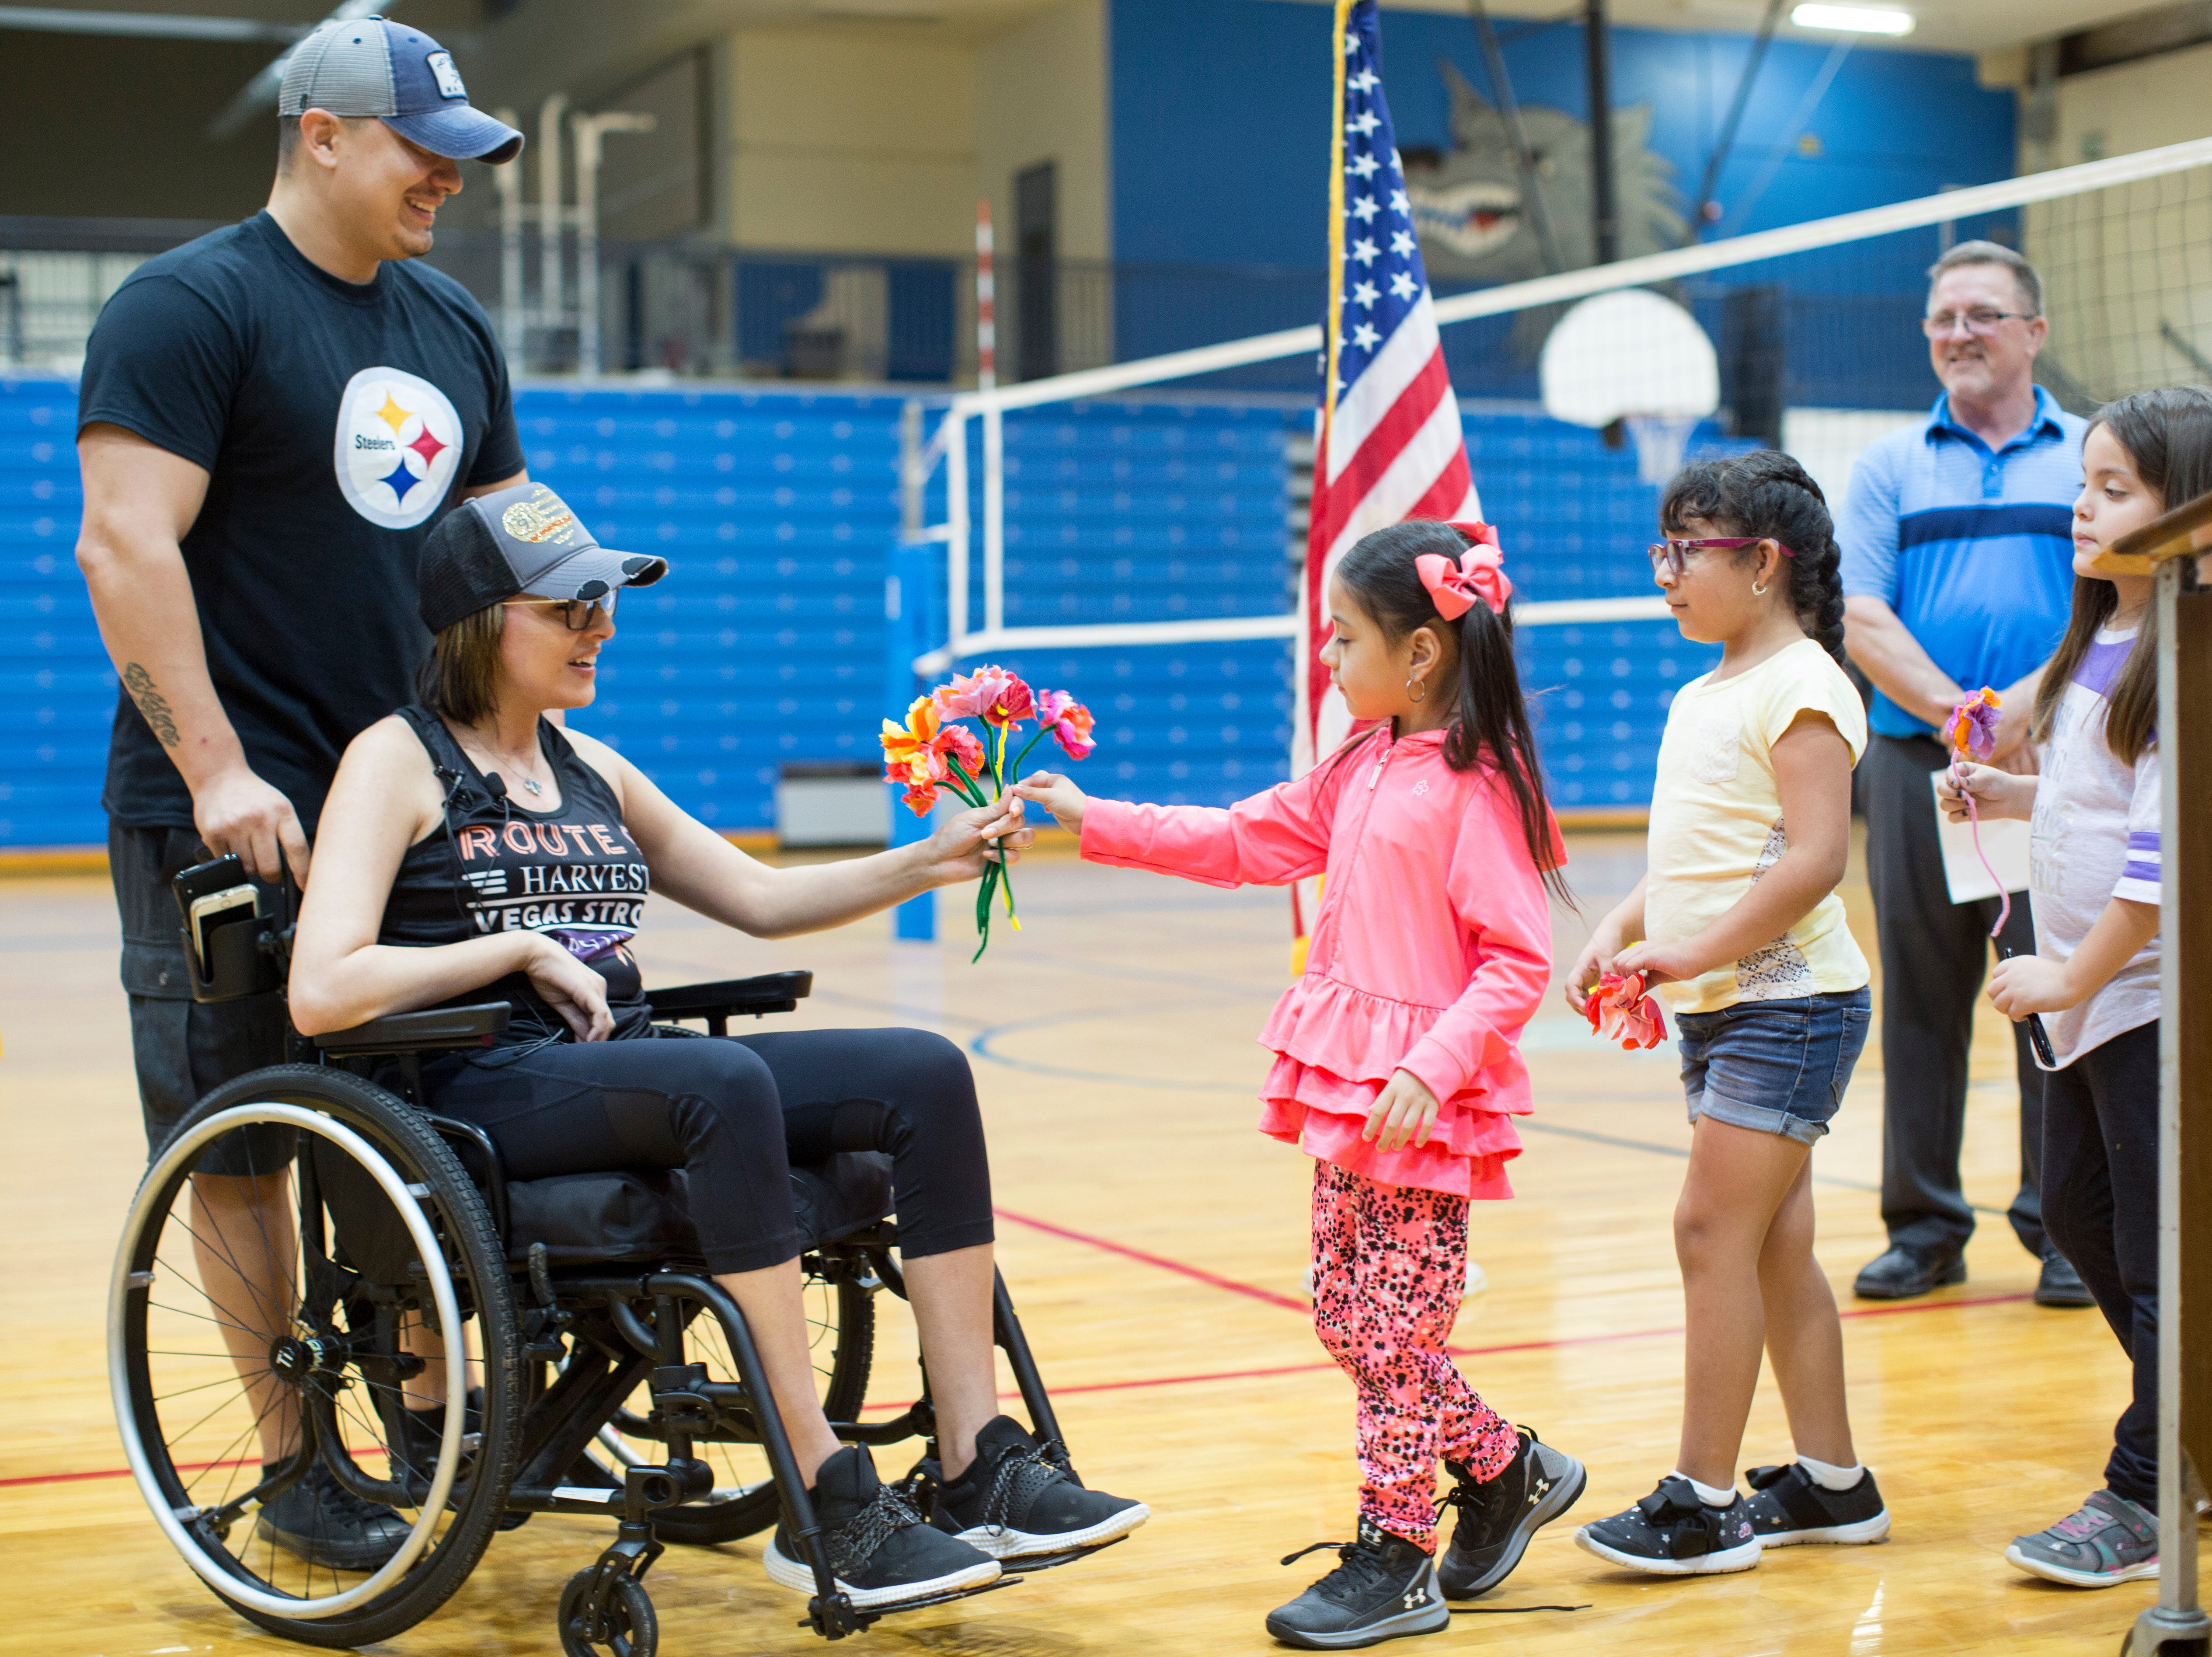 Alexia Perez gives Jovanna Calzadillas a flower during a school assembly at Hayden High School in Winkleman to honor her courage recovering from a severe gunshot wound during the Route 91 Harvest Festival mass shooting.